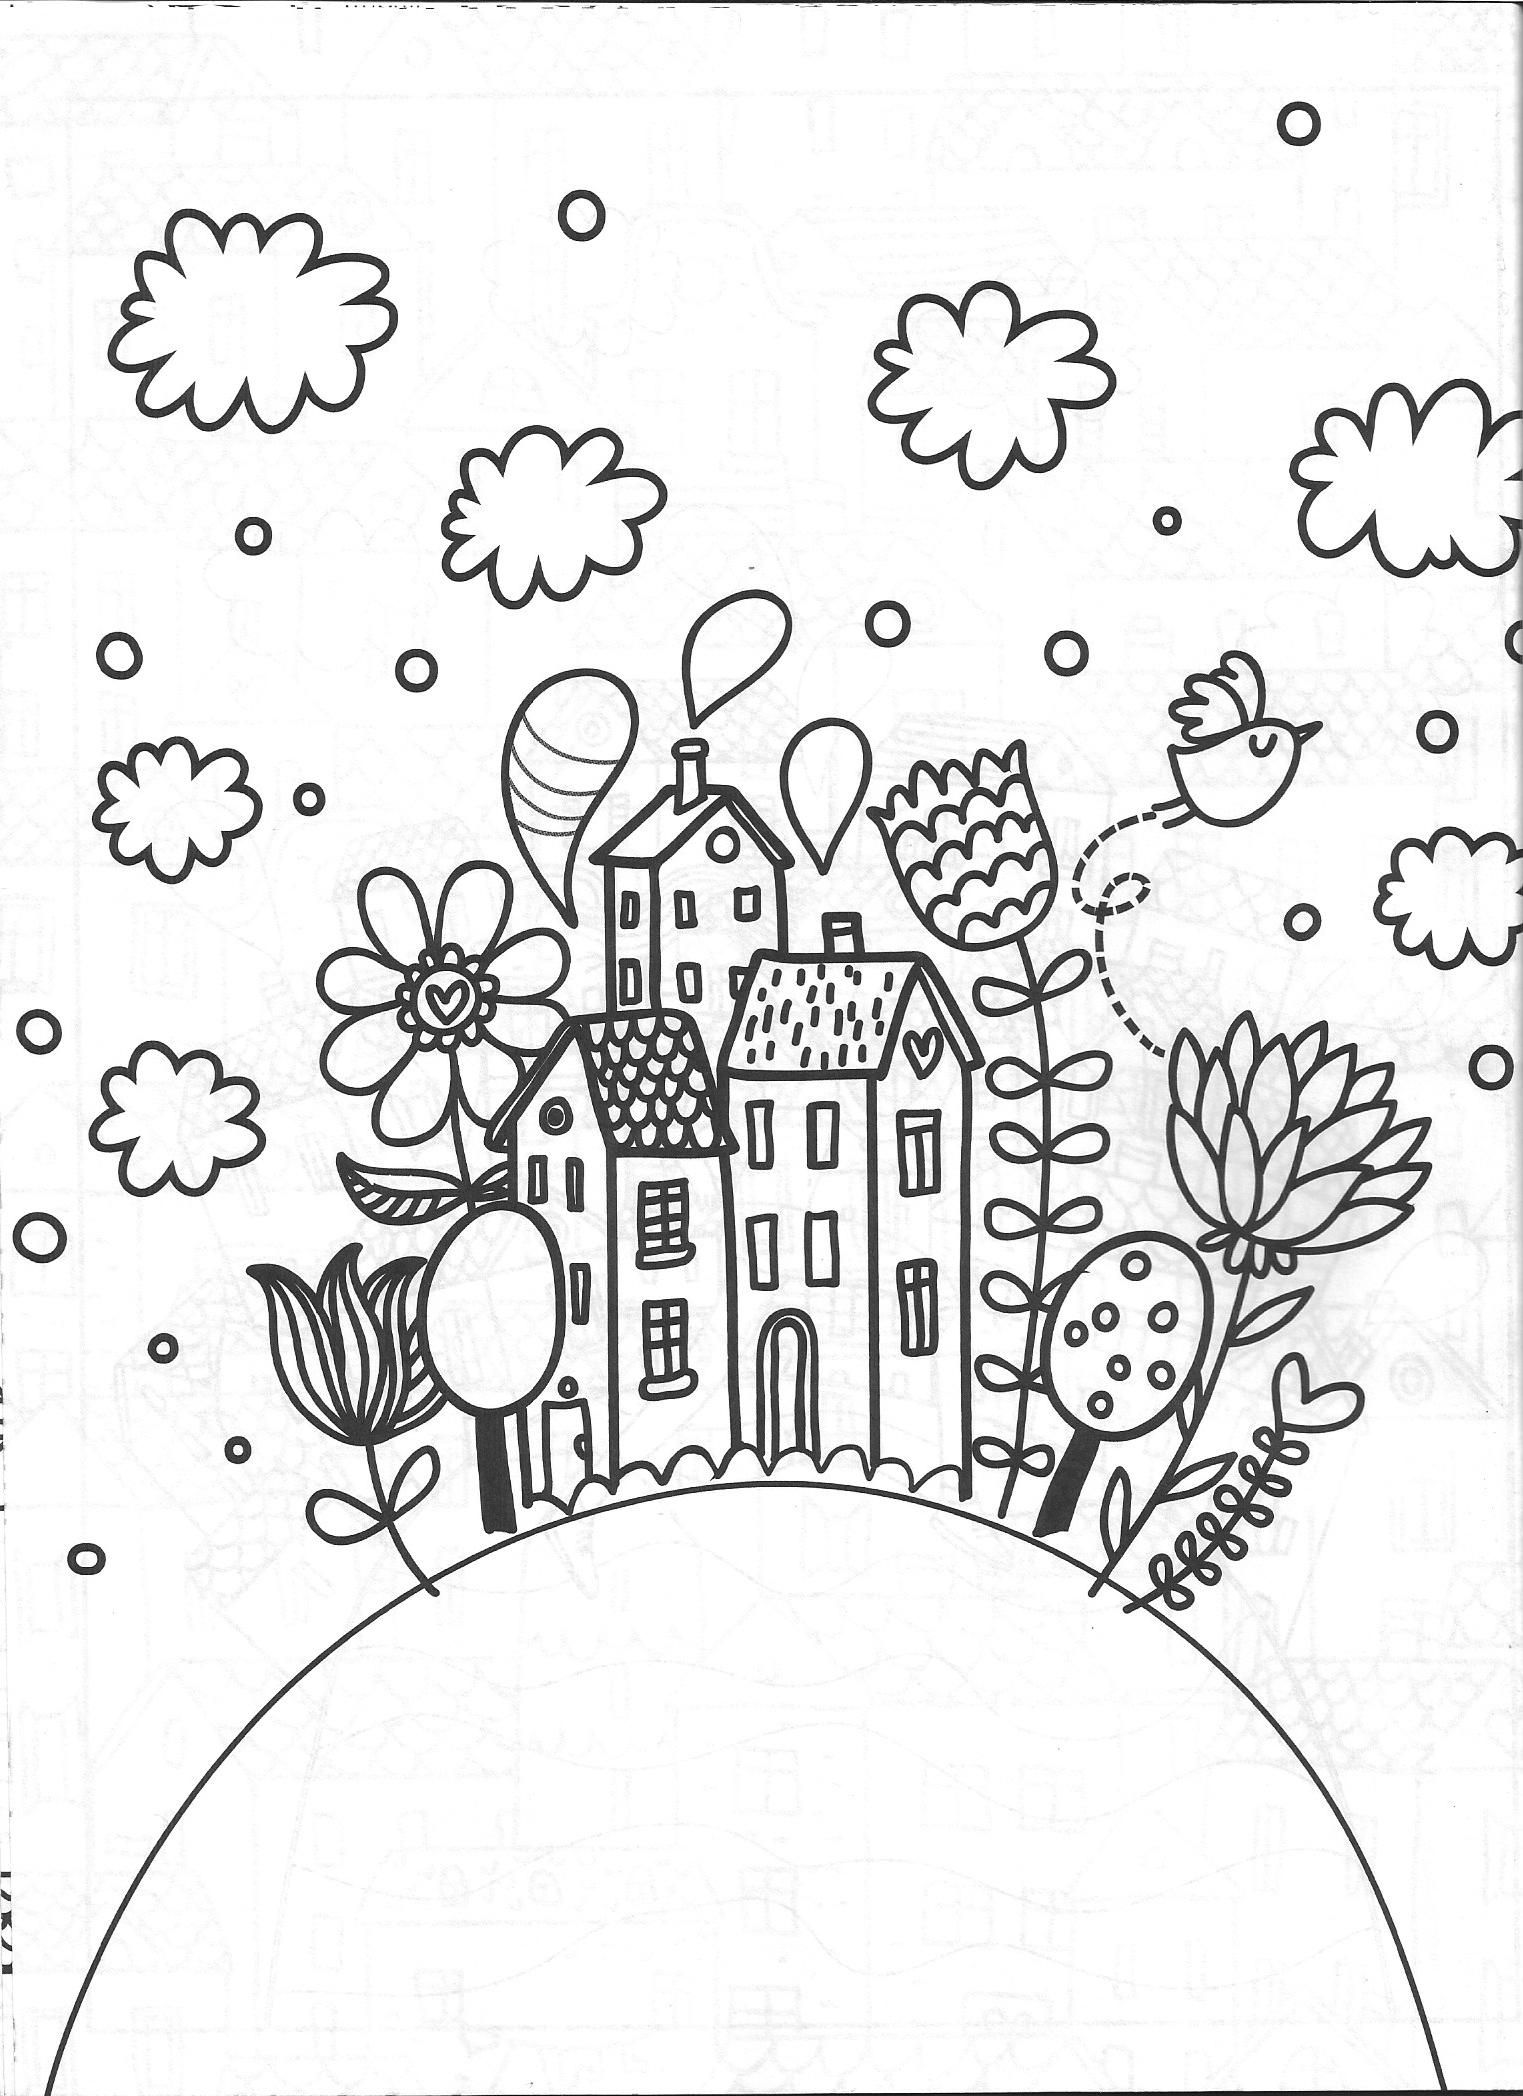 Embroidery pattern image only unknown original source jwt